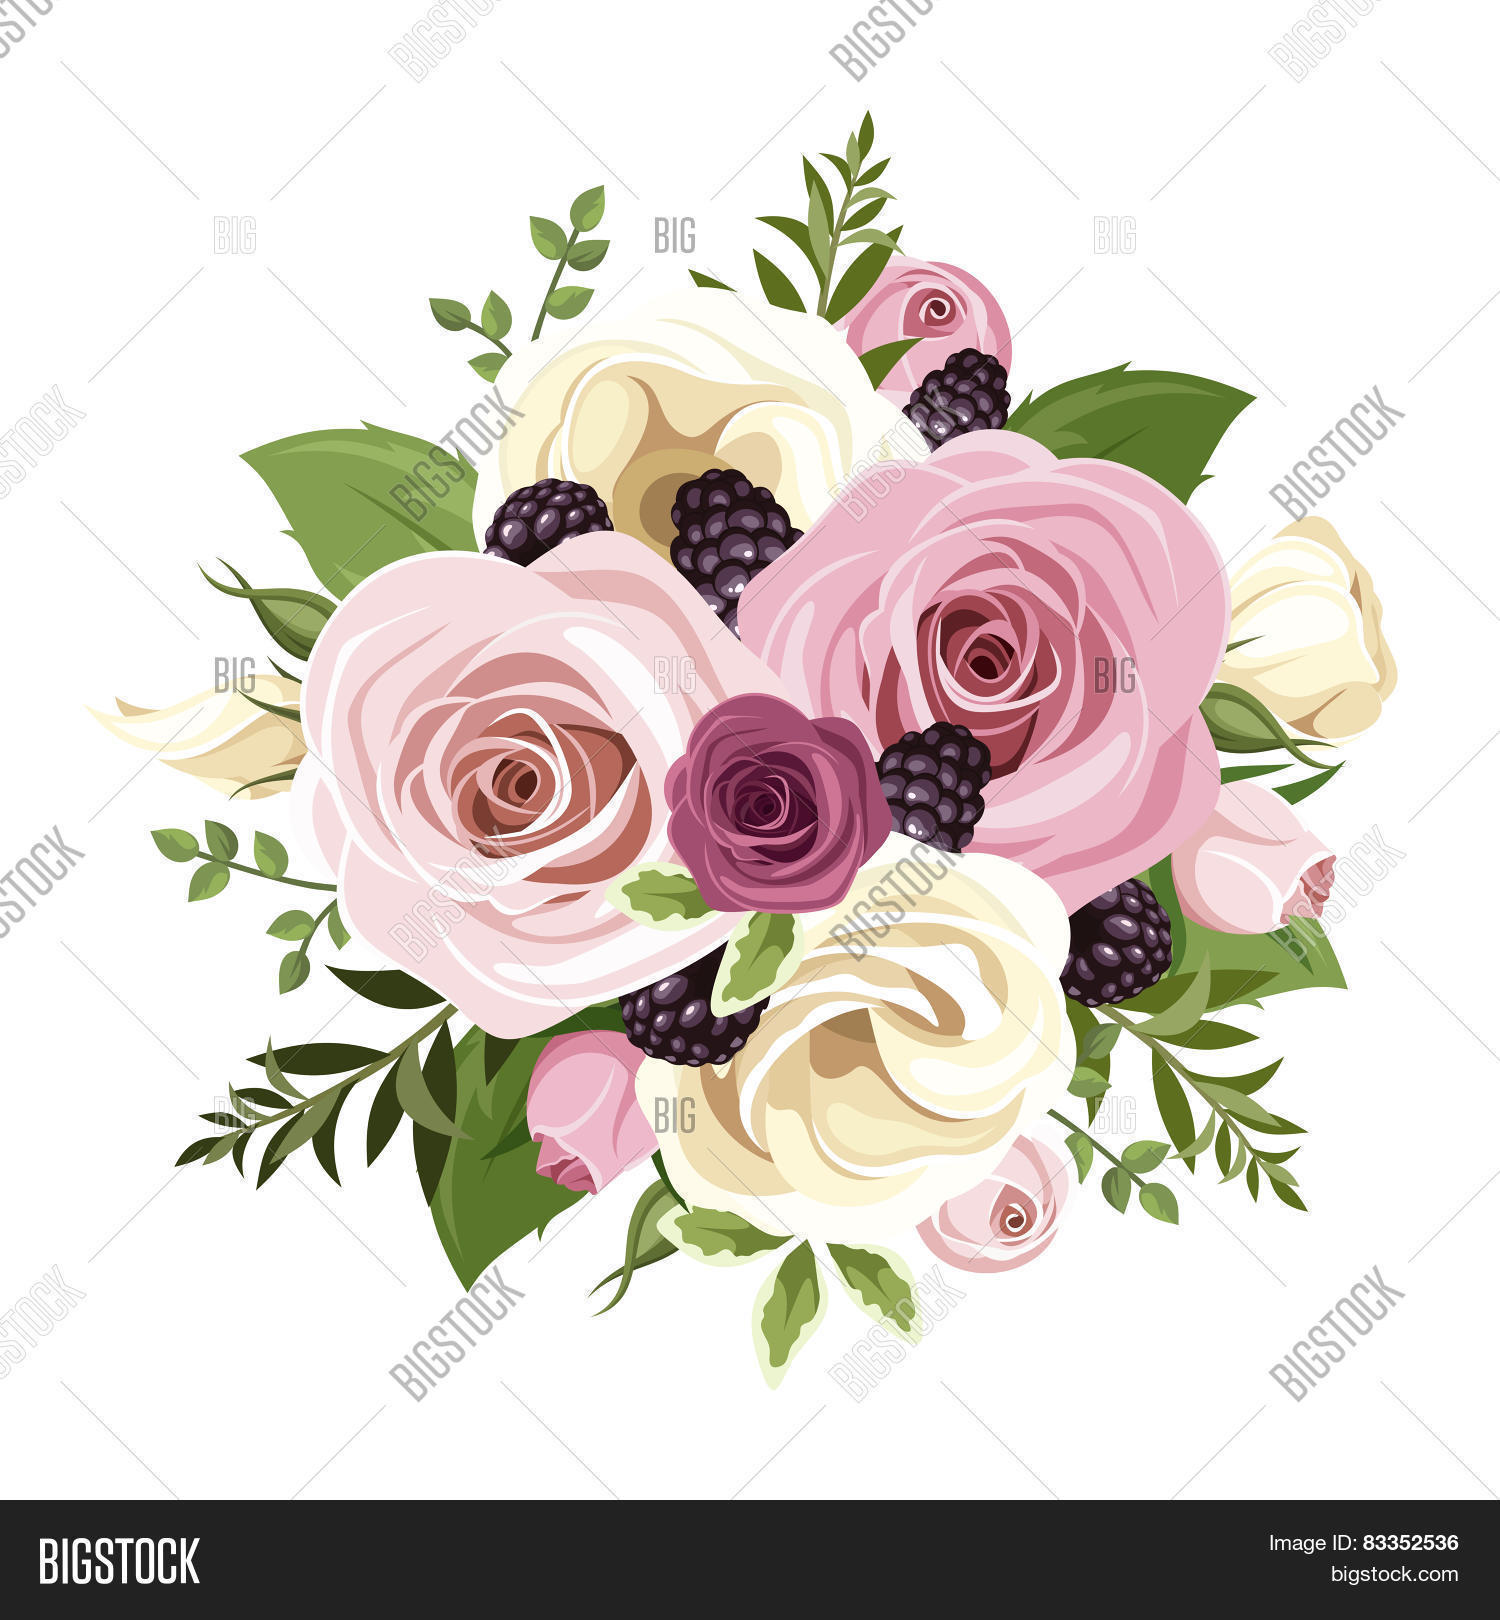 arrangement,background,background green,beautiful,berry,black,blackberry,bloom,blossom,bouquet,bouquet of flowers,brambleberry,bud,composition,decoration,decorative,design,element,eustoma,flora,floral,flower,flower arrangement,flower background,flower bouquet,flower isolated,flowers background,flowers bouquet,flowers isolated,flowers vector,flower vector,gift,green,green background,green backgrounds,green leaves,greetings,illustration,isolated,isolated on white,ivory,leaf,leaves,leaves background,leaves vector,lisianthus,lisianthuses,natural,nature,nature vector,ornate,pink,pink background,pink backgrounds,pink flowers,plant,posy,present,purple,purple background,purple flower,retro,rose,rosebud,roses background,rose vector,style,vector,vector flowers,vintage,vintage flower,vintage flowers,violet,wedding,wedding background,wedding bouquet,wedding flowers,wedding vector,white,white flower,white flowers,white rose